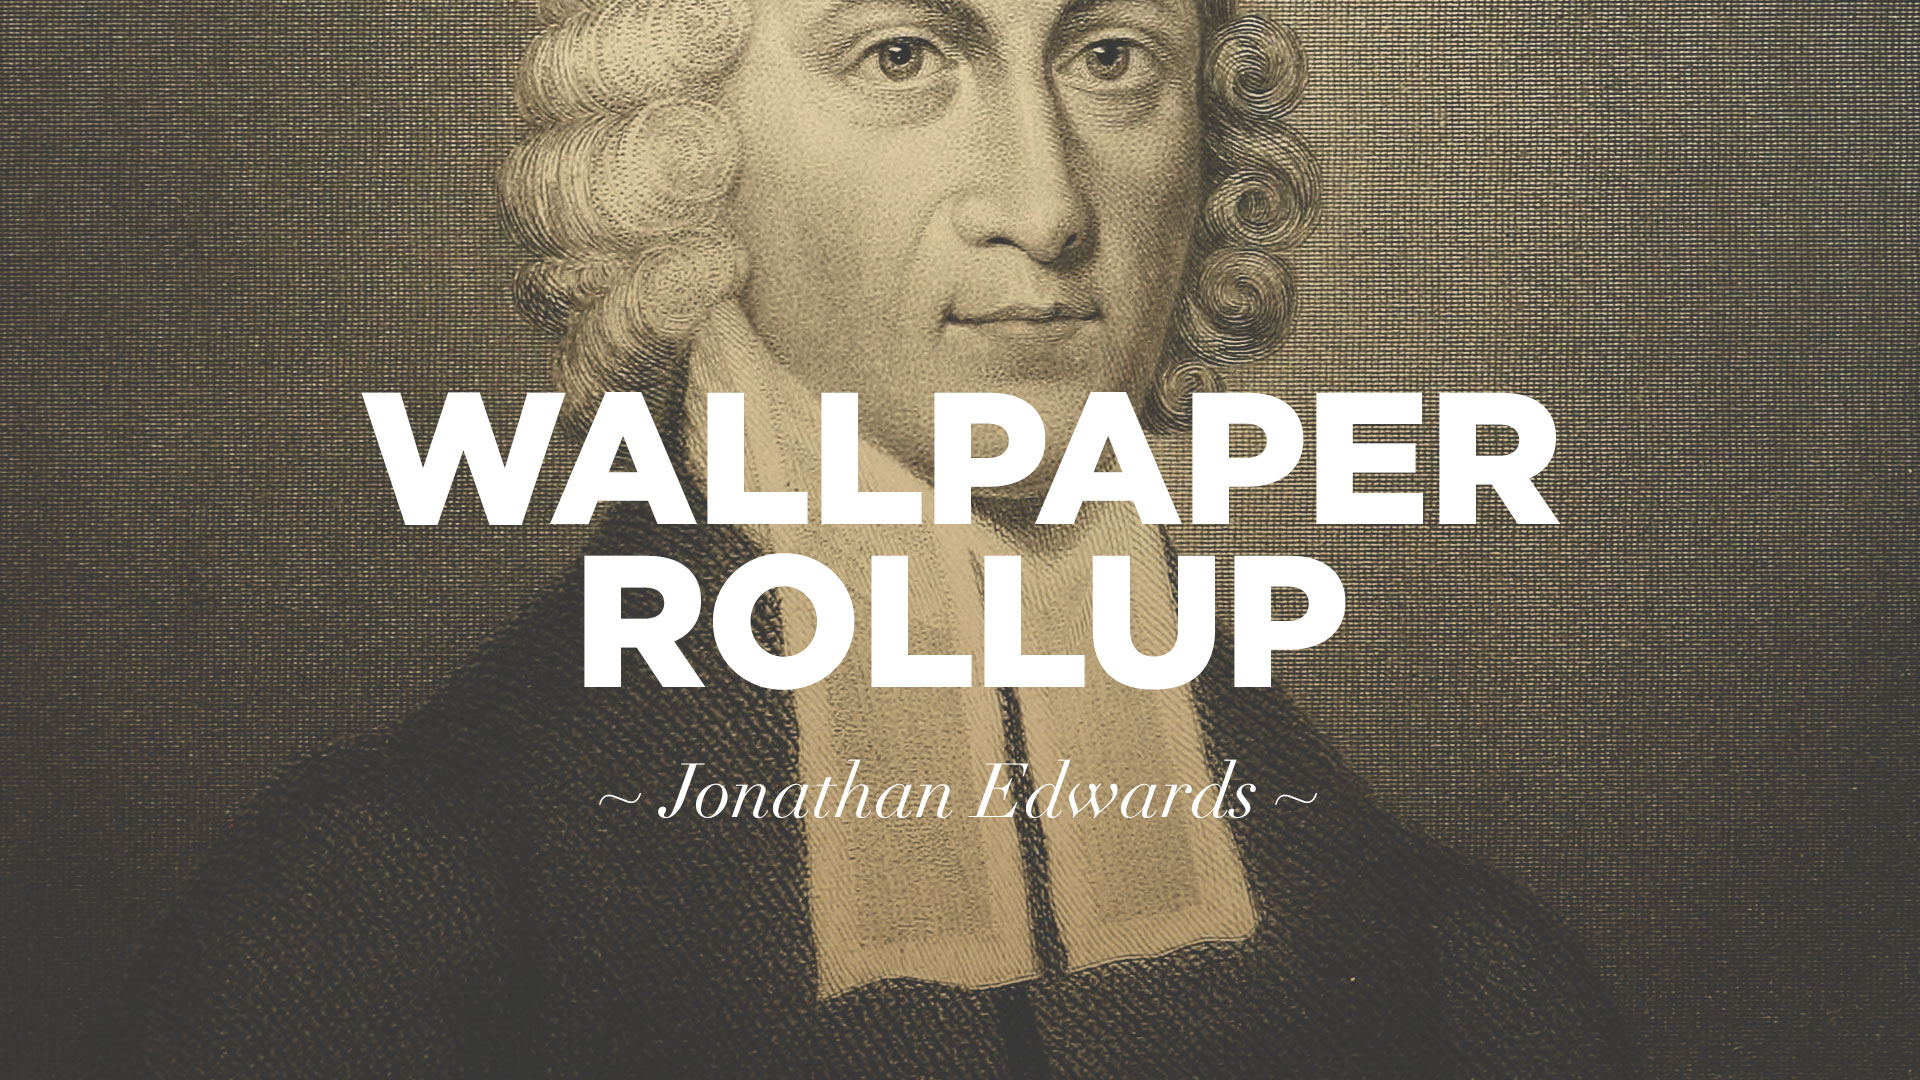 Jonathan Edwards Quotes Wallpaper Rollup The Resolutions Of Jonathan Edwards  Jacob Abshire